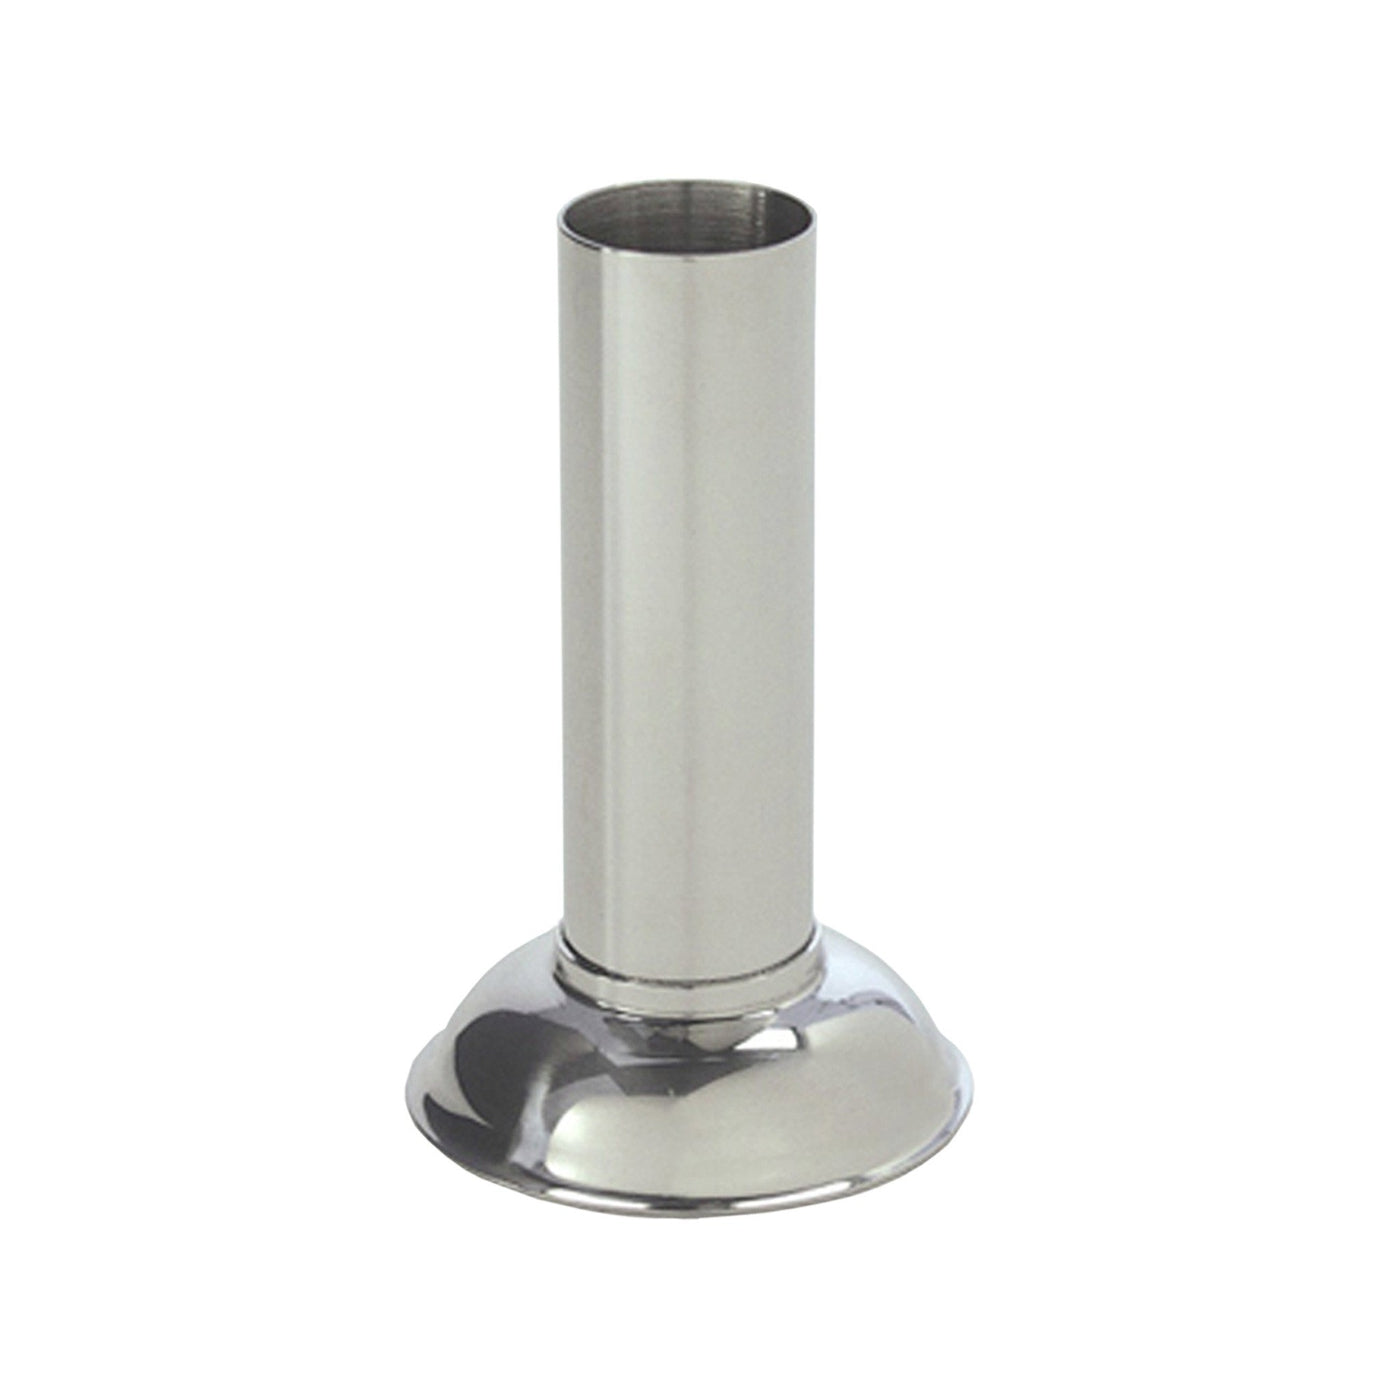 Forcep Jars-Laboratory Accessory-Mortech Manufacturing Company Inc. Quality Stainless Steel Autopsy, Morgue, Funeral Home, Necropsy, Veterinary / Anatomy, Dissection Equipment and Accessories